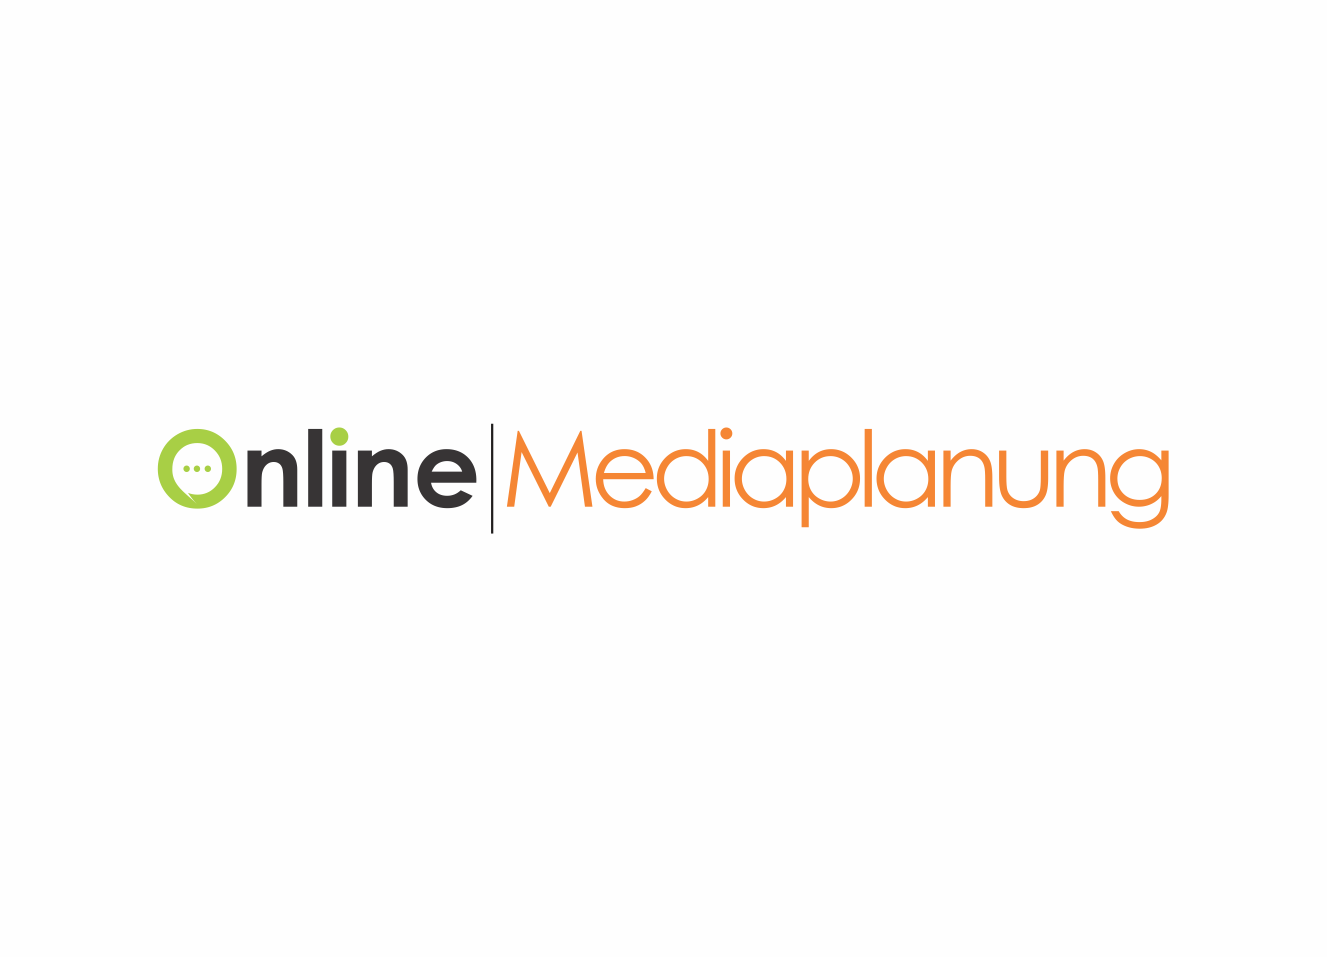 Logo-Design gesucht für Online Marketing-Blog